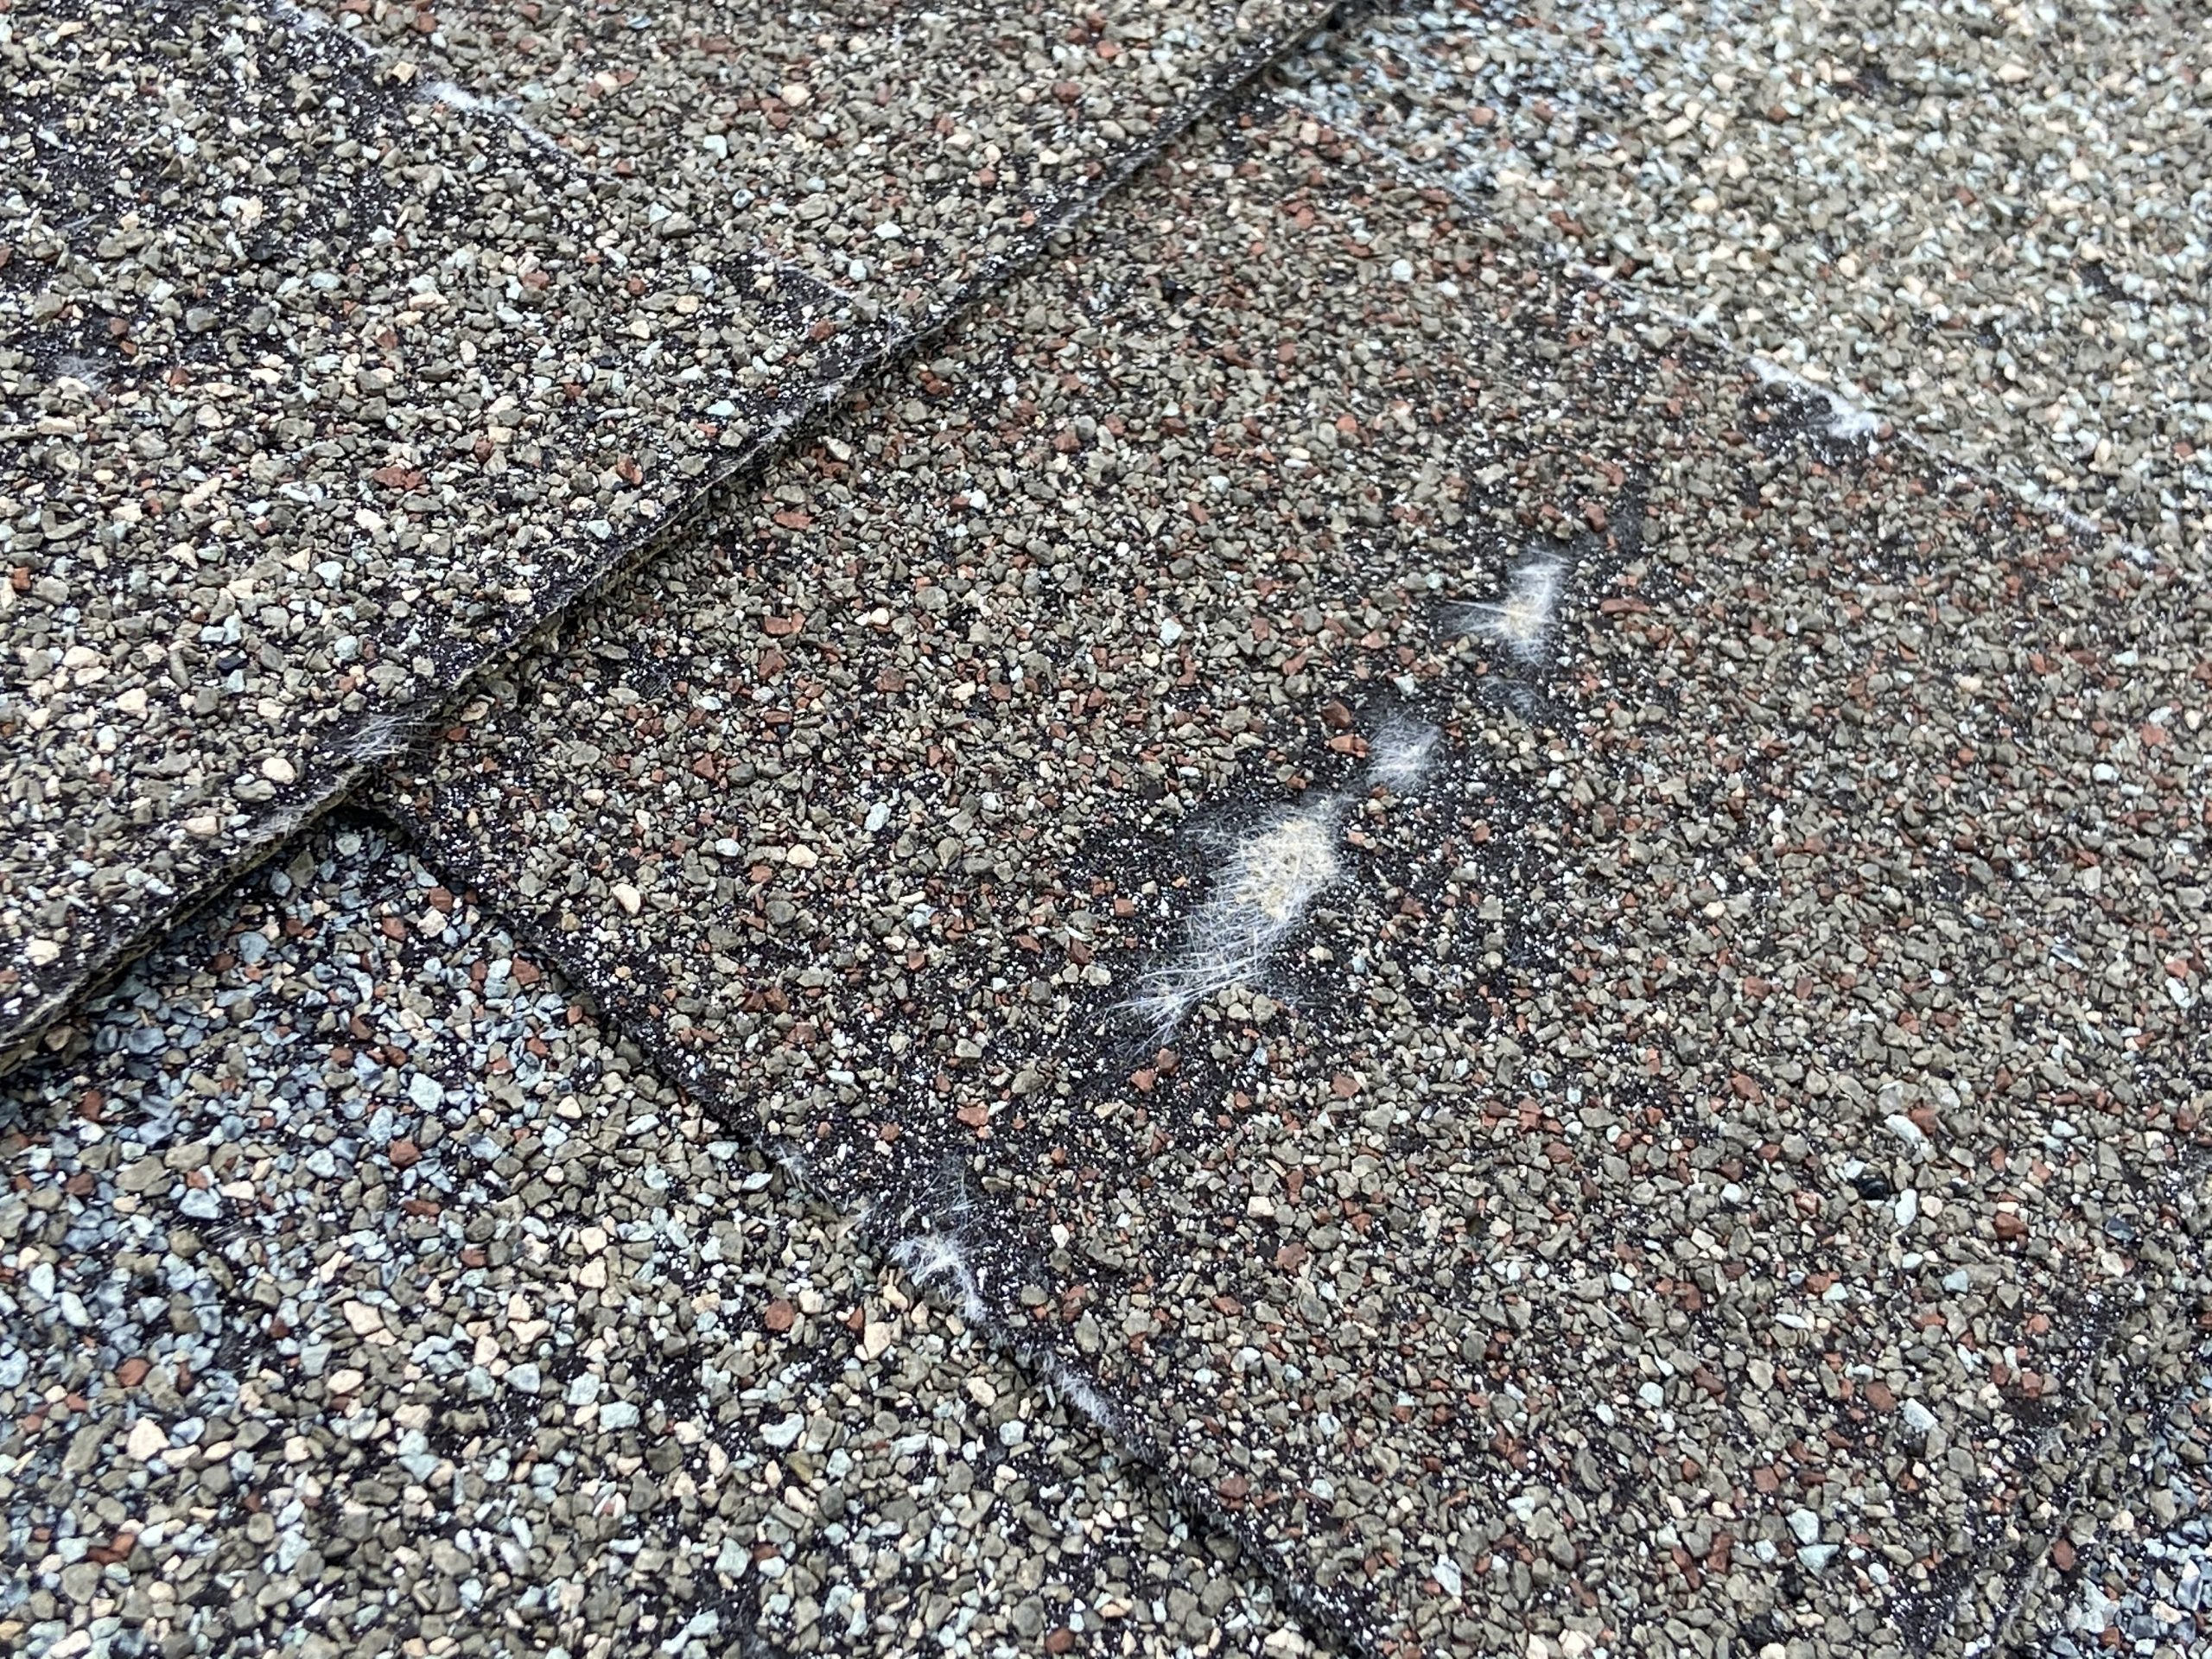 This is a view of a shingle with exposed fiberglass mat.